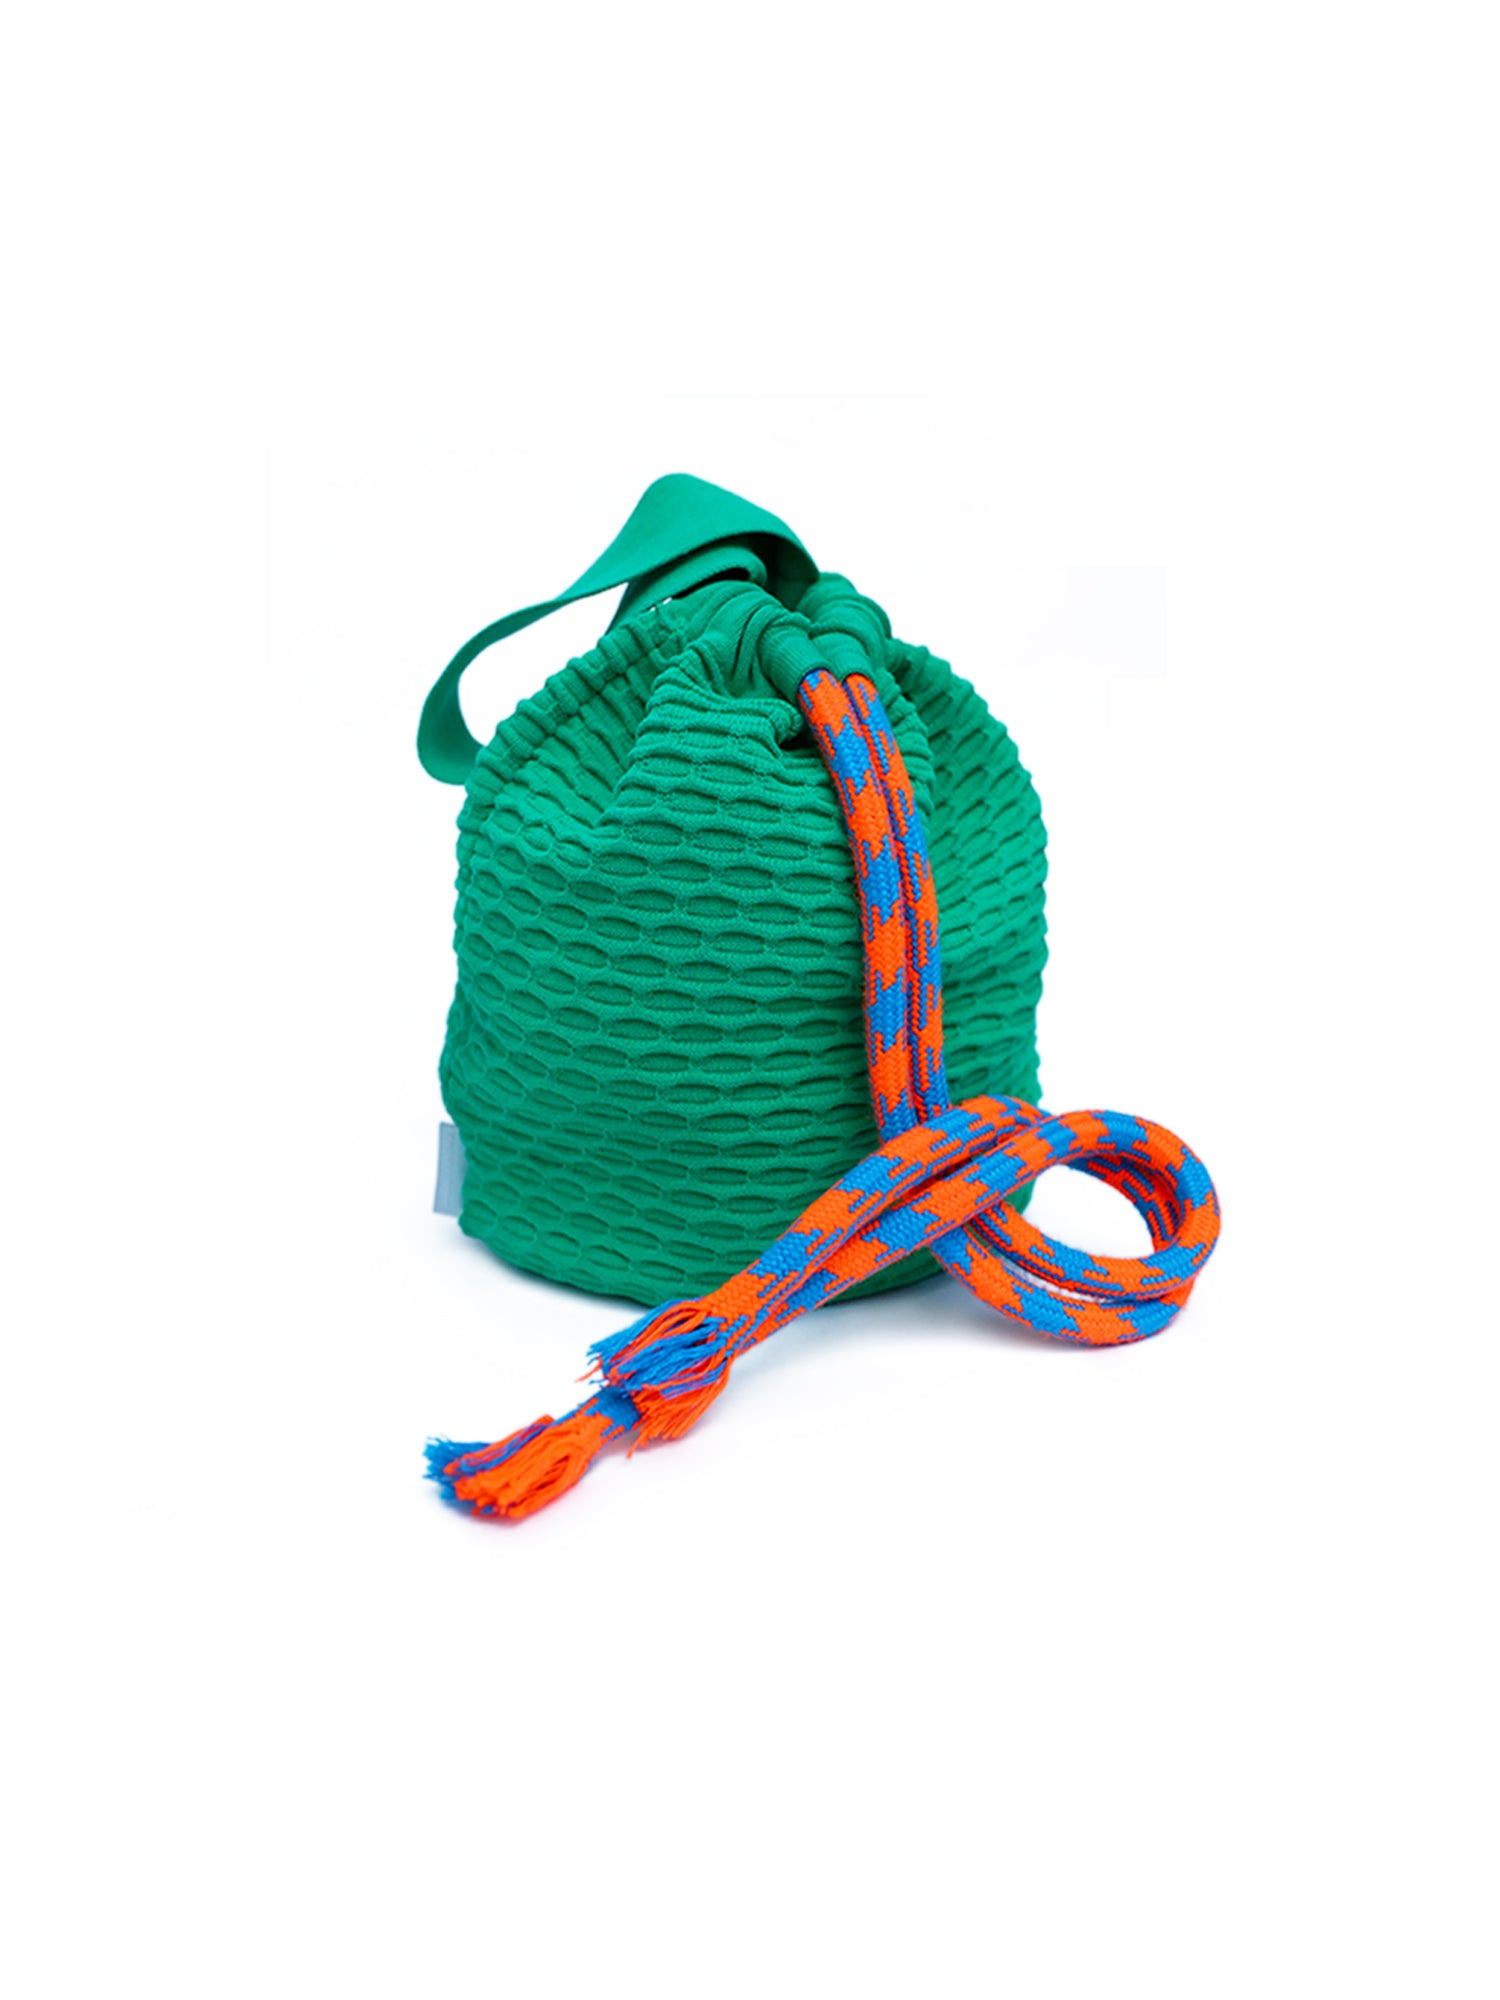 Knit Bucket Bag Green